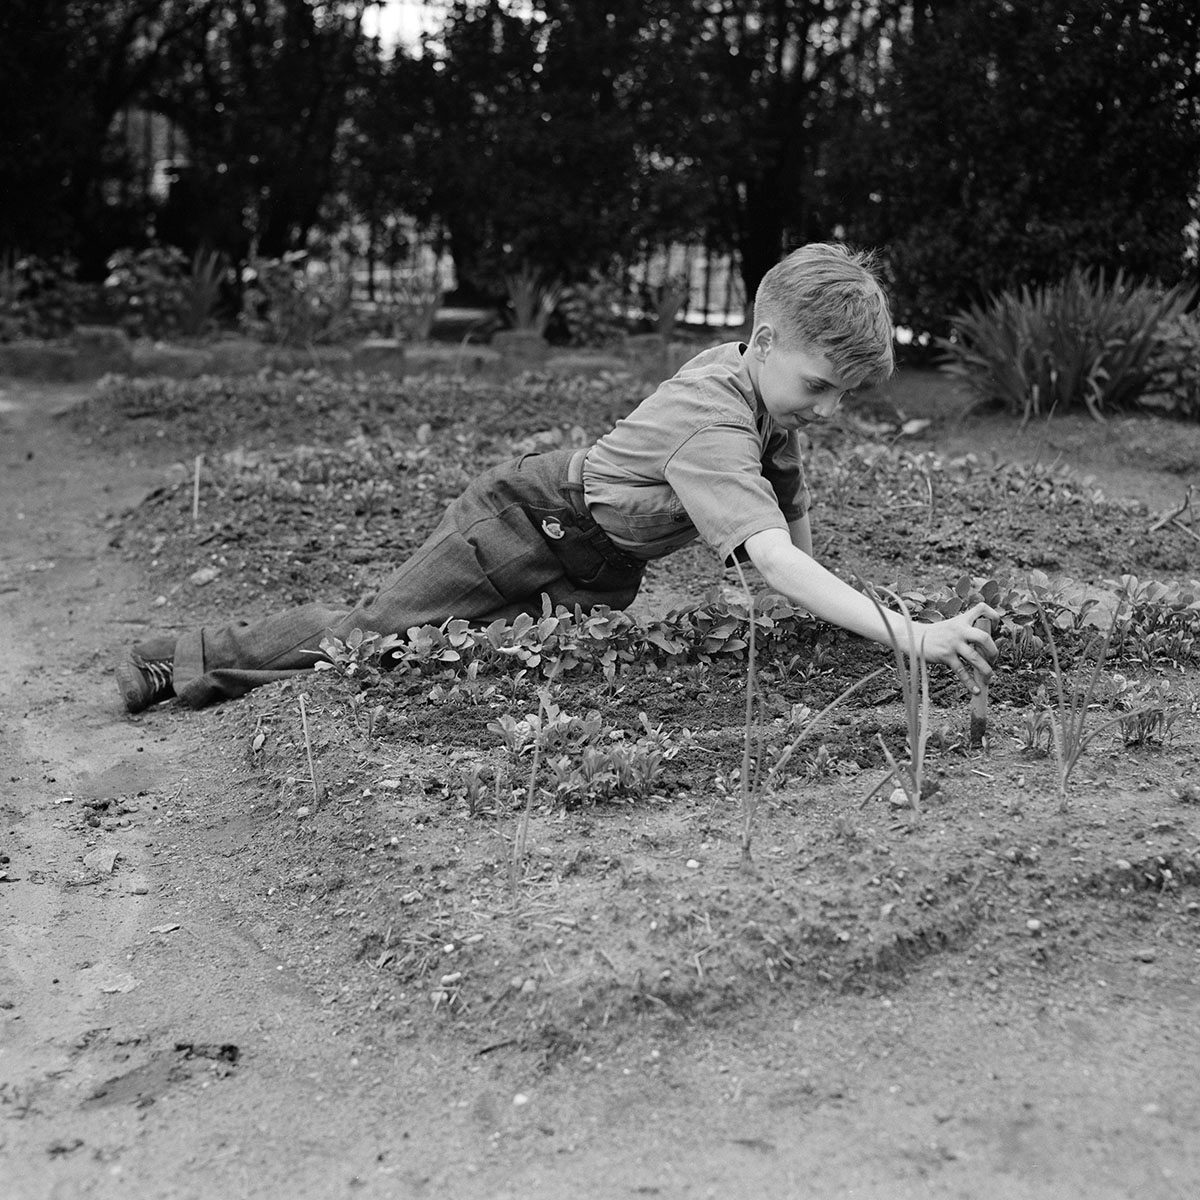 Child Working in School Victory Garden, First Avenue between Thirty-Fifth and Thirty-Sixth Streets, New York City, New York, USA, Edward Meyer for Office of War Information, June 1944. (Photo by: Universal History Archive/Universal Images Group via Getty Images)